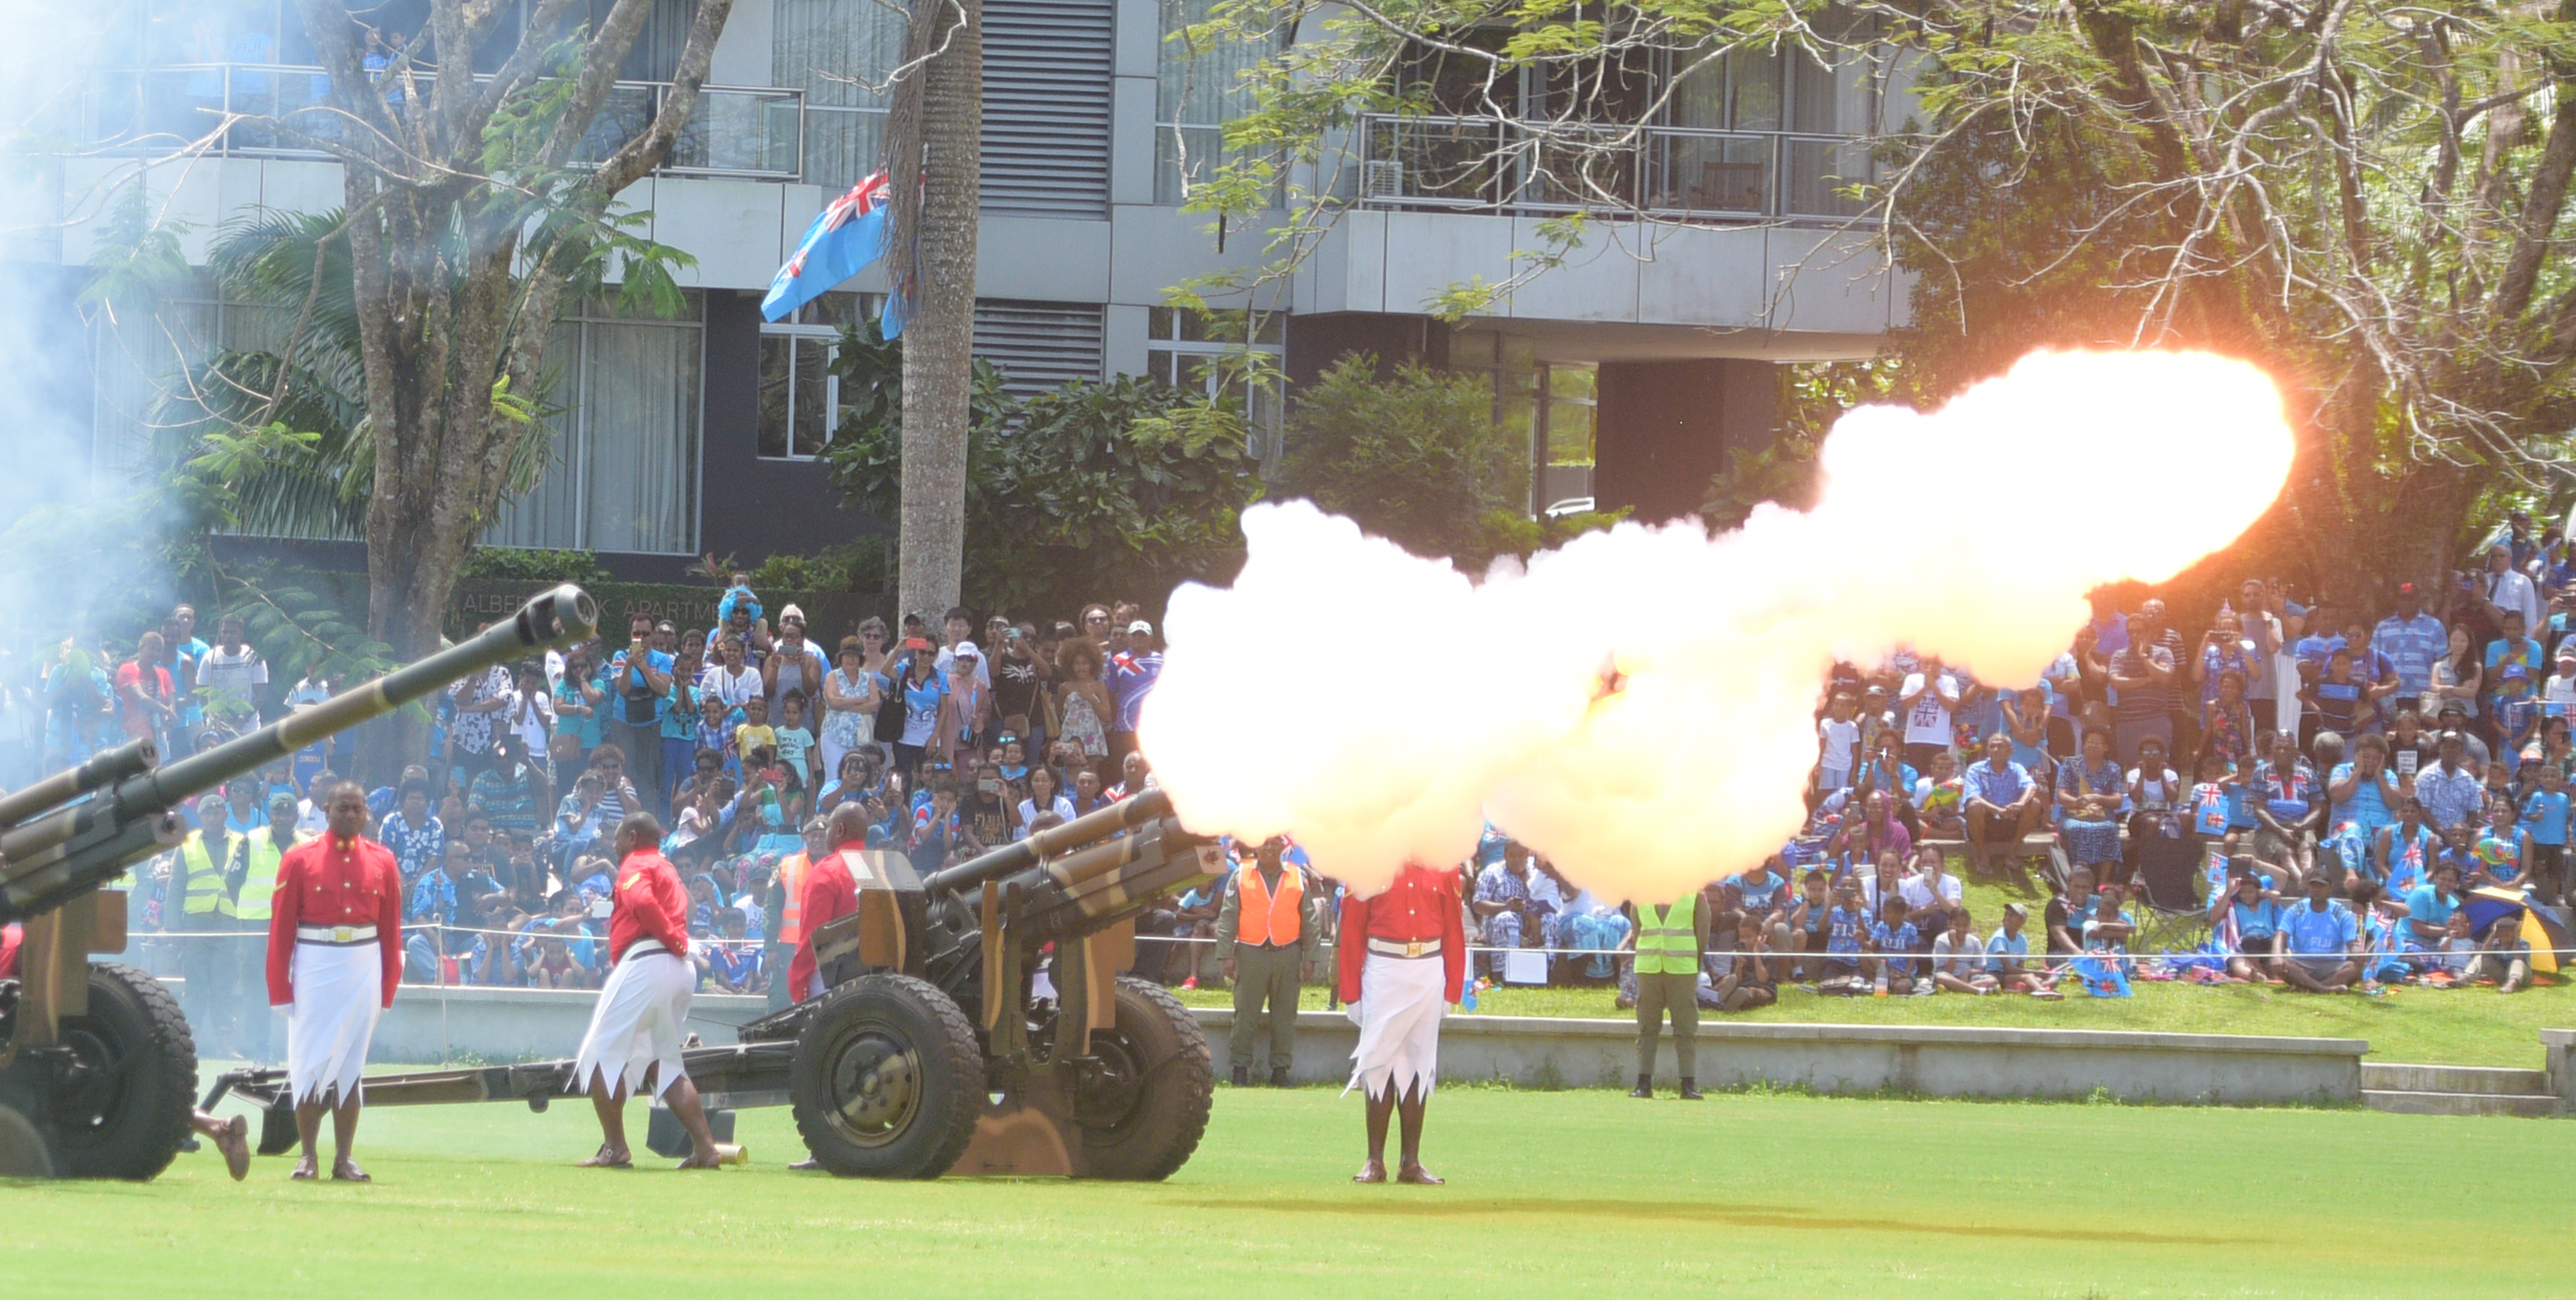 RFMF personnel accorded 21 gun salutes during The 50th Independence commemorative Fiji Day Parade at Albert Park on October 7, 2020. Photo: Ronald Kumar.